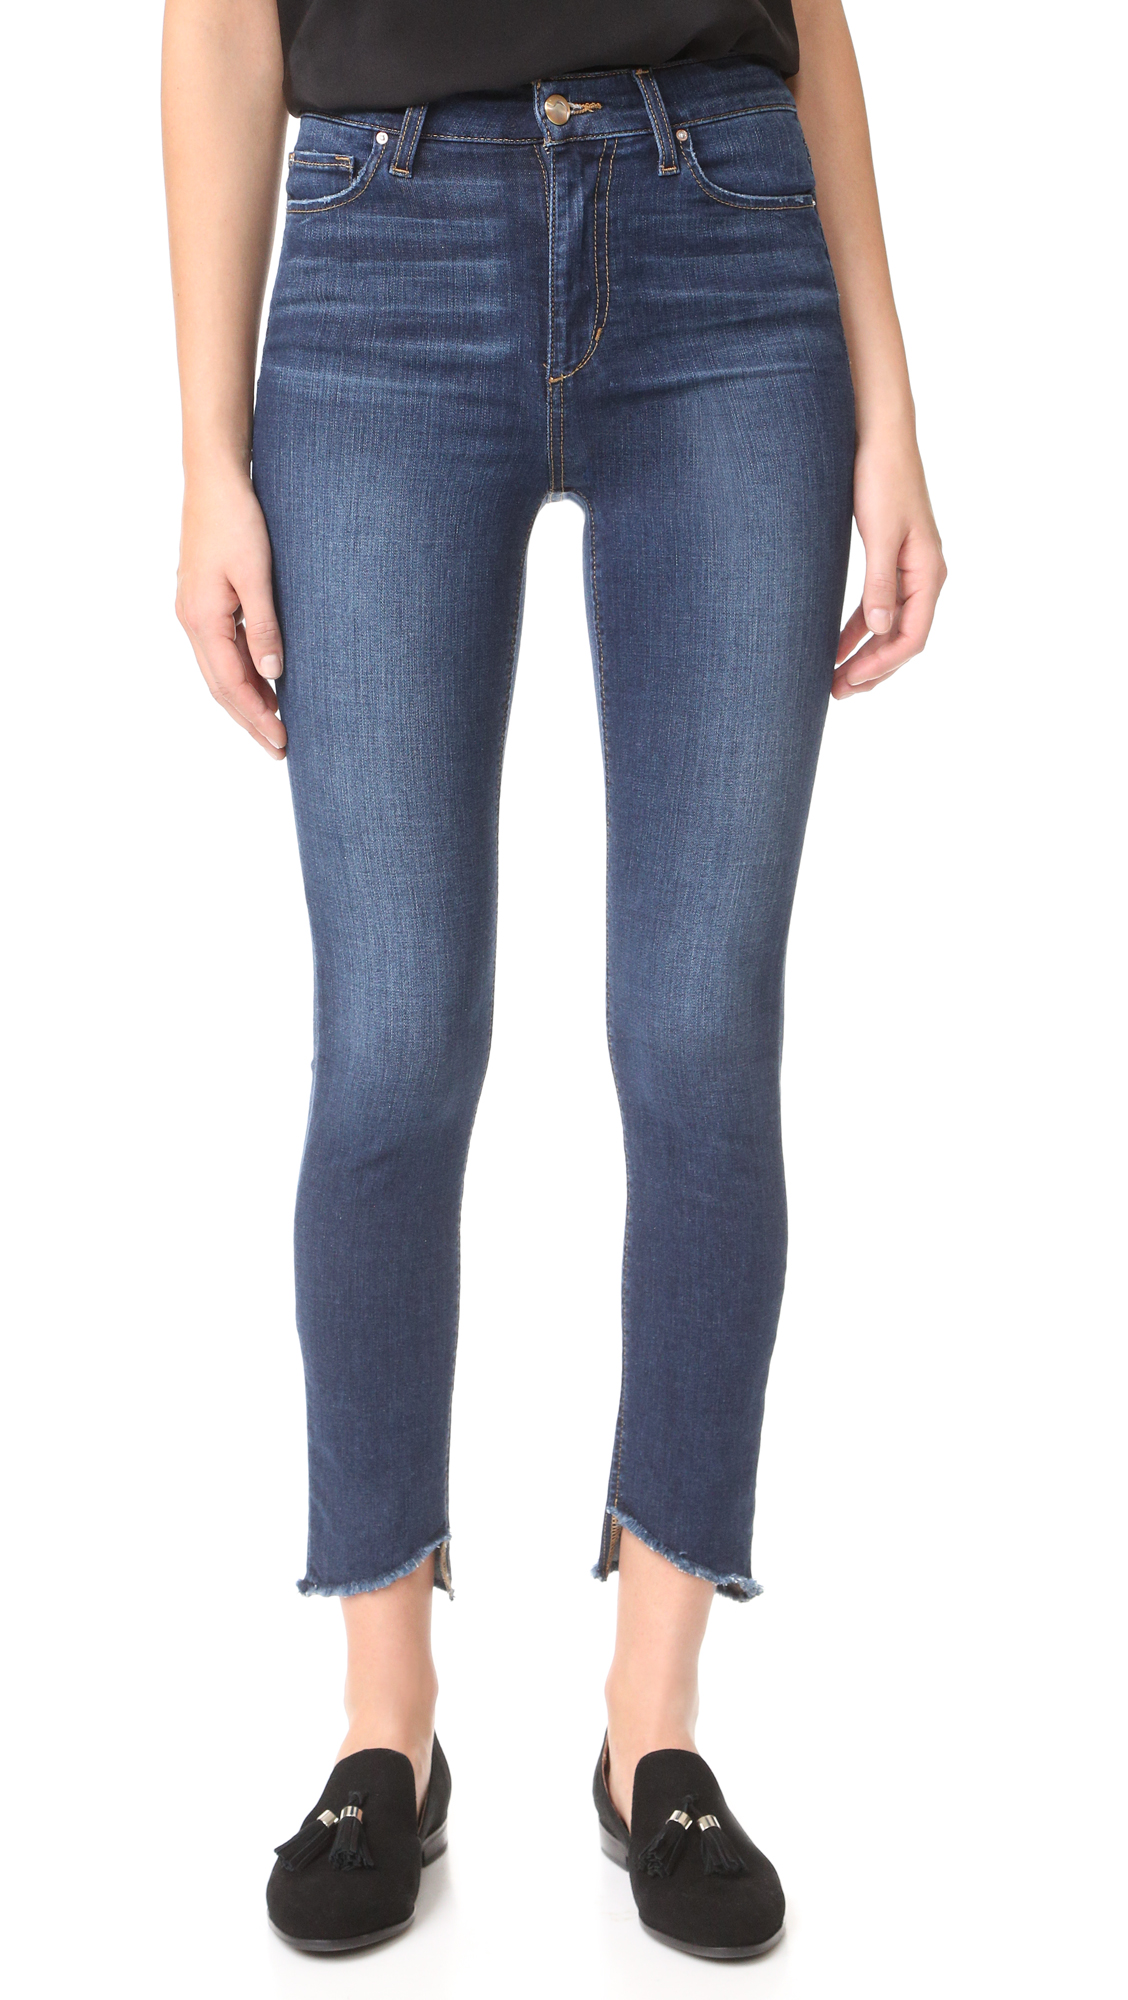 Joe's skinny jeans with frayed, uneven cuffs. 5 pocket styling. Button closure and zip fly. Fabric: Stretch denim. 75% cotton/16% lyocell/6% elasterell p/3% elastane. Wash cold or dry clean. Imported, Mexico. Measurements Rise: 10.75in / 27cm Inseam: 28in / 71cm